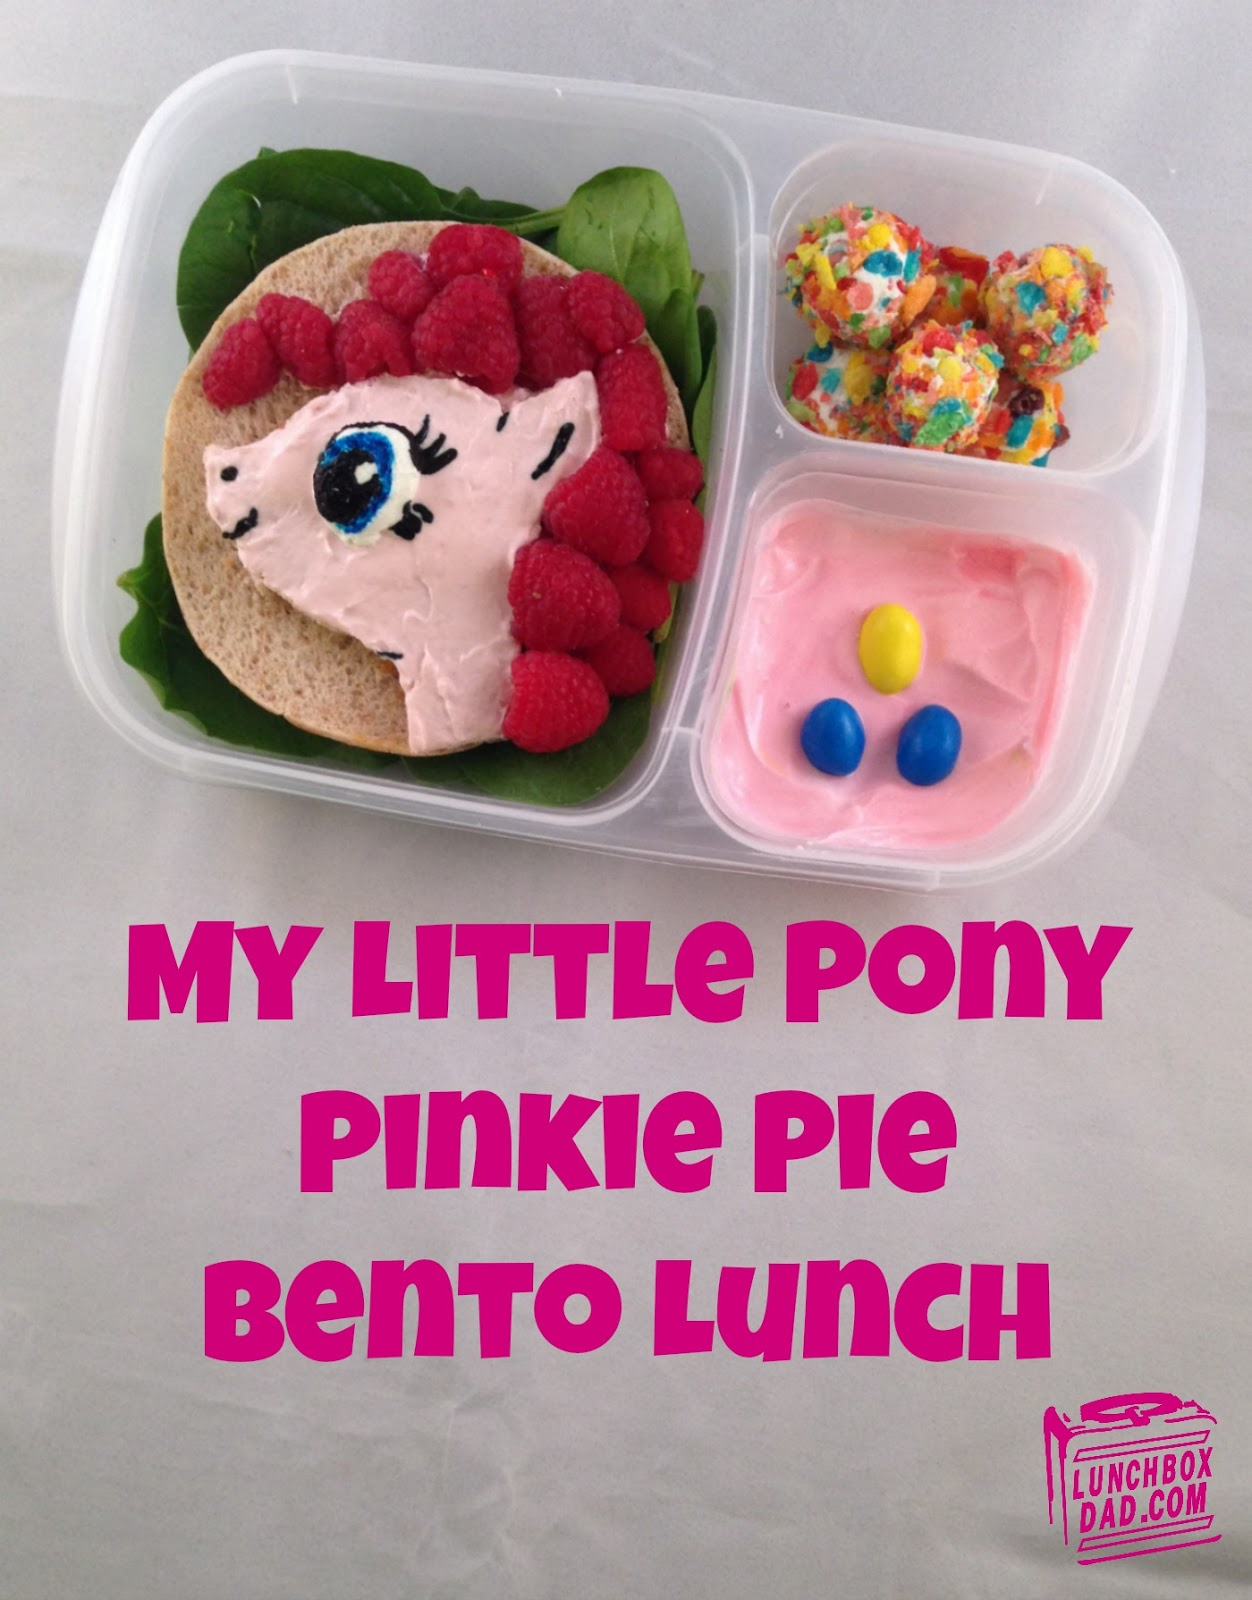 My Little Pony Pinkie Pie Bento Lunch